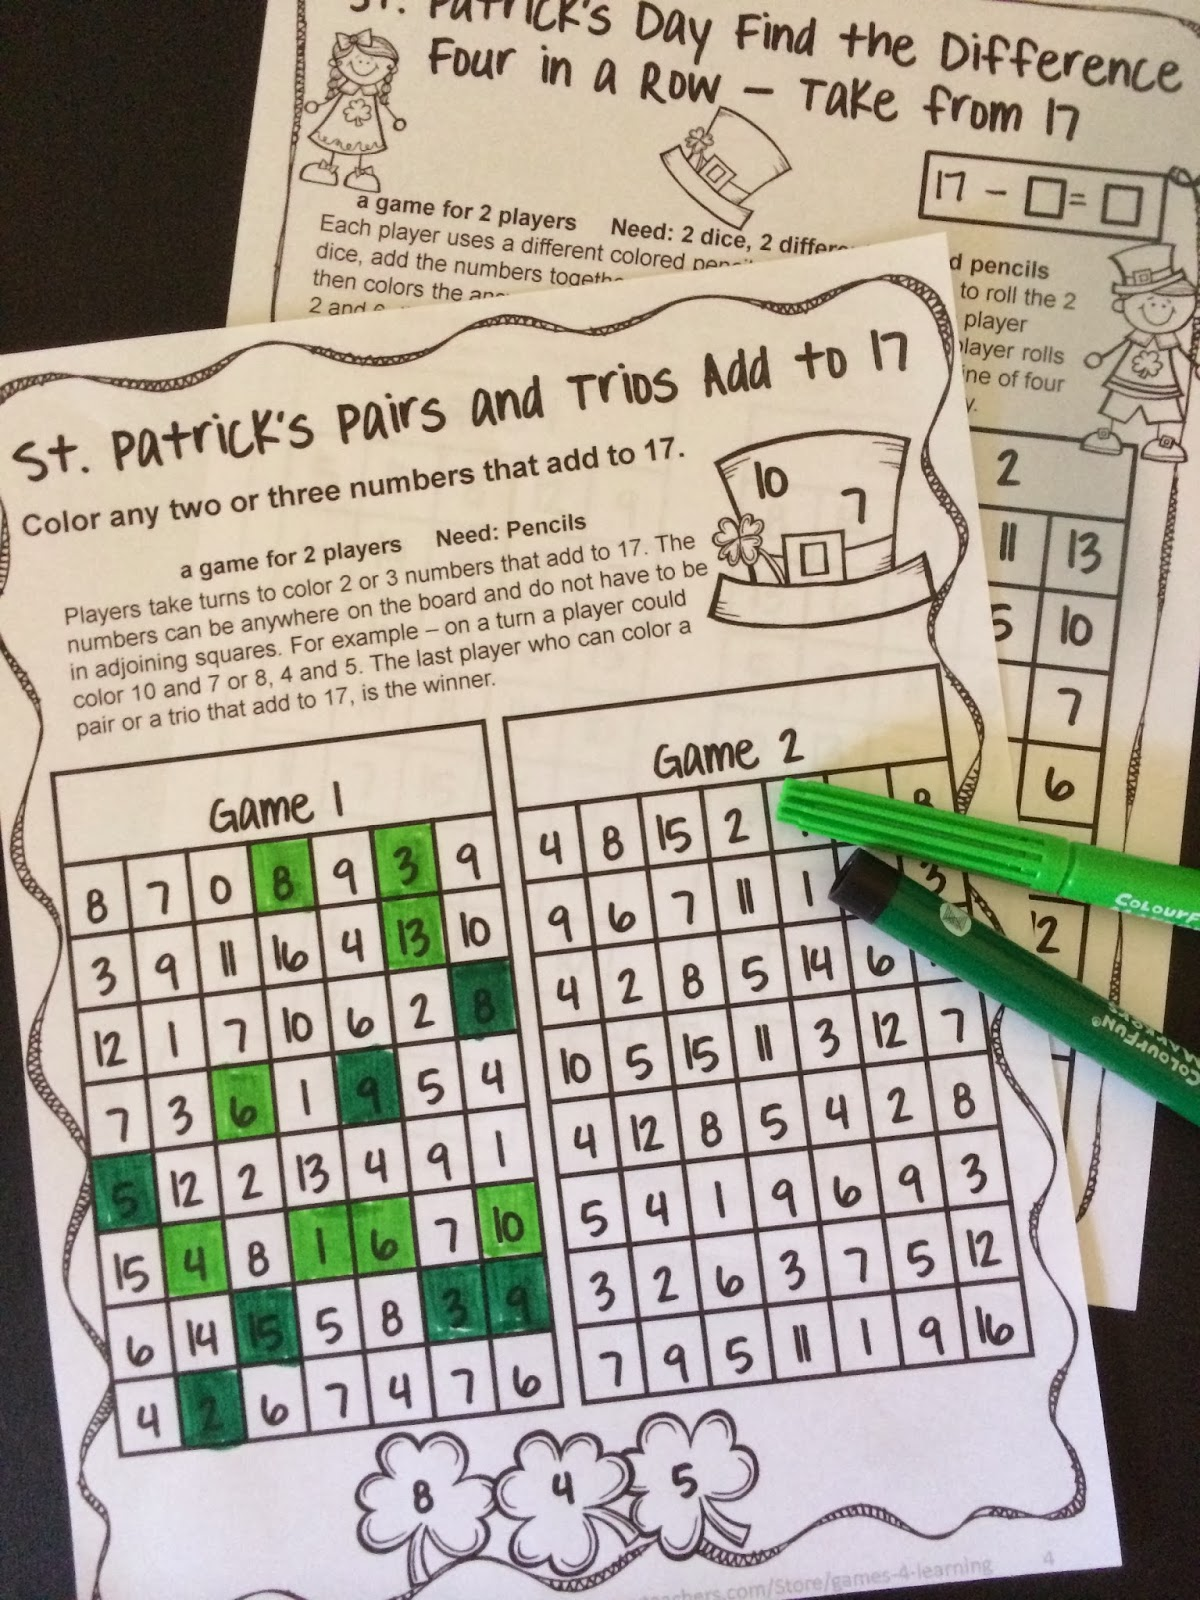 Fun Games 4 Learning St Patrick S Day Math Freebies